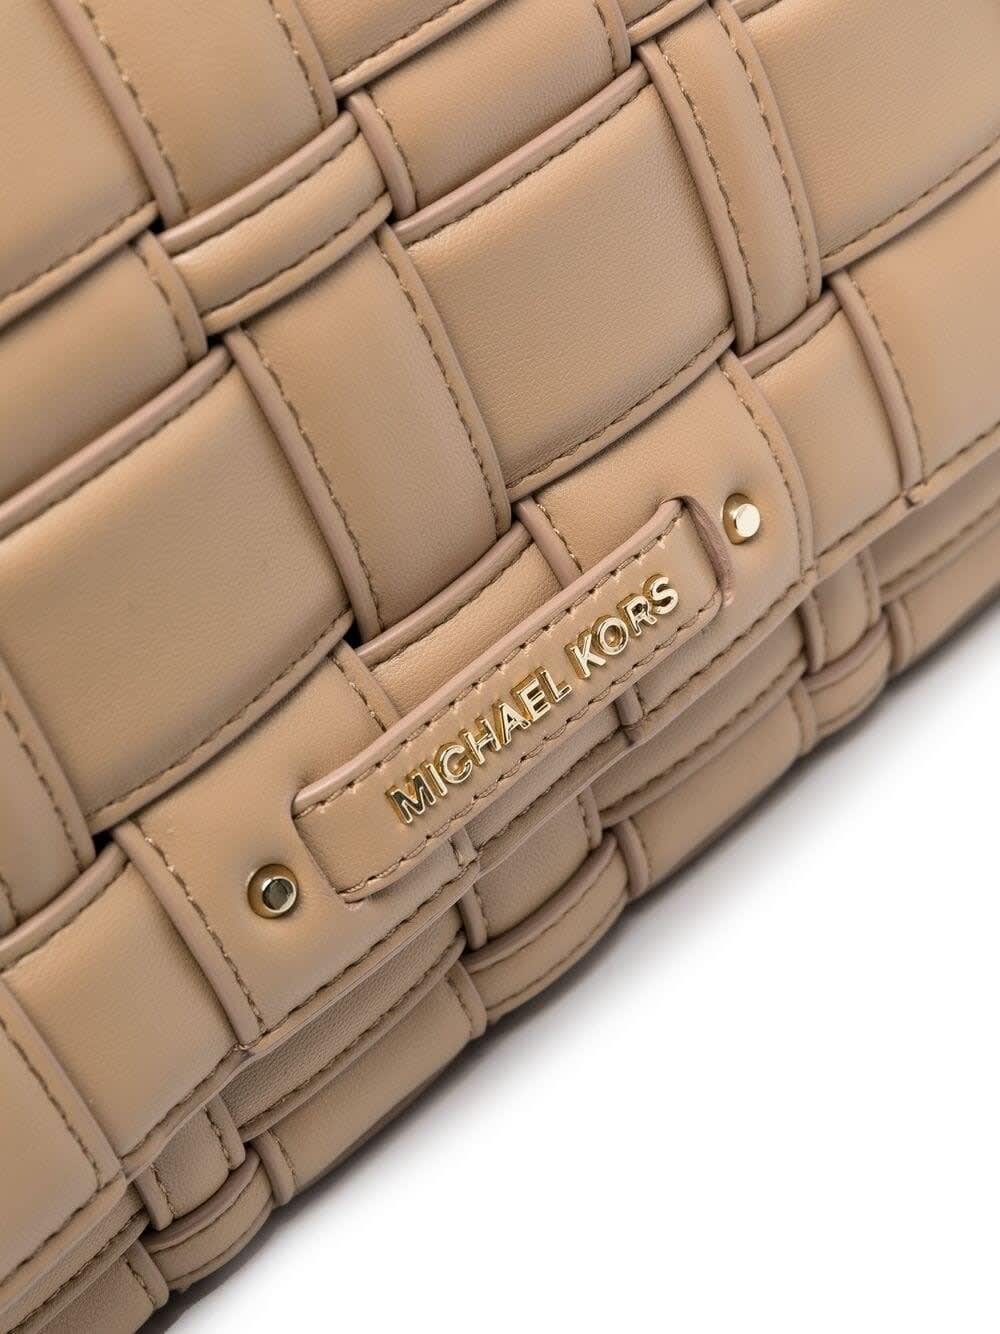 Michael Michael Kors Clutches IVY CROSSBODY BAG IN BEIGE QUILTED LEATHER